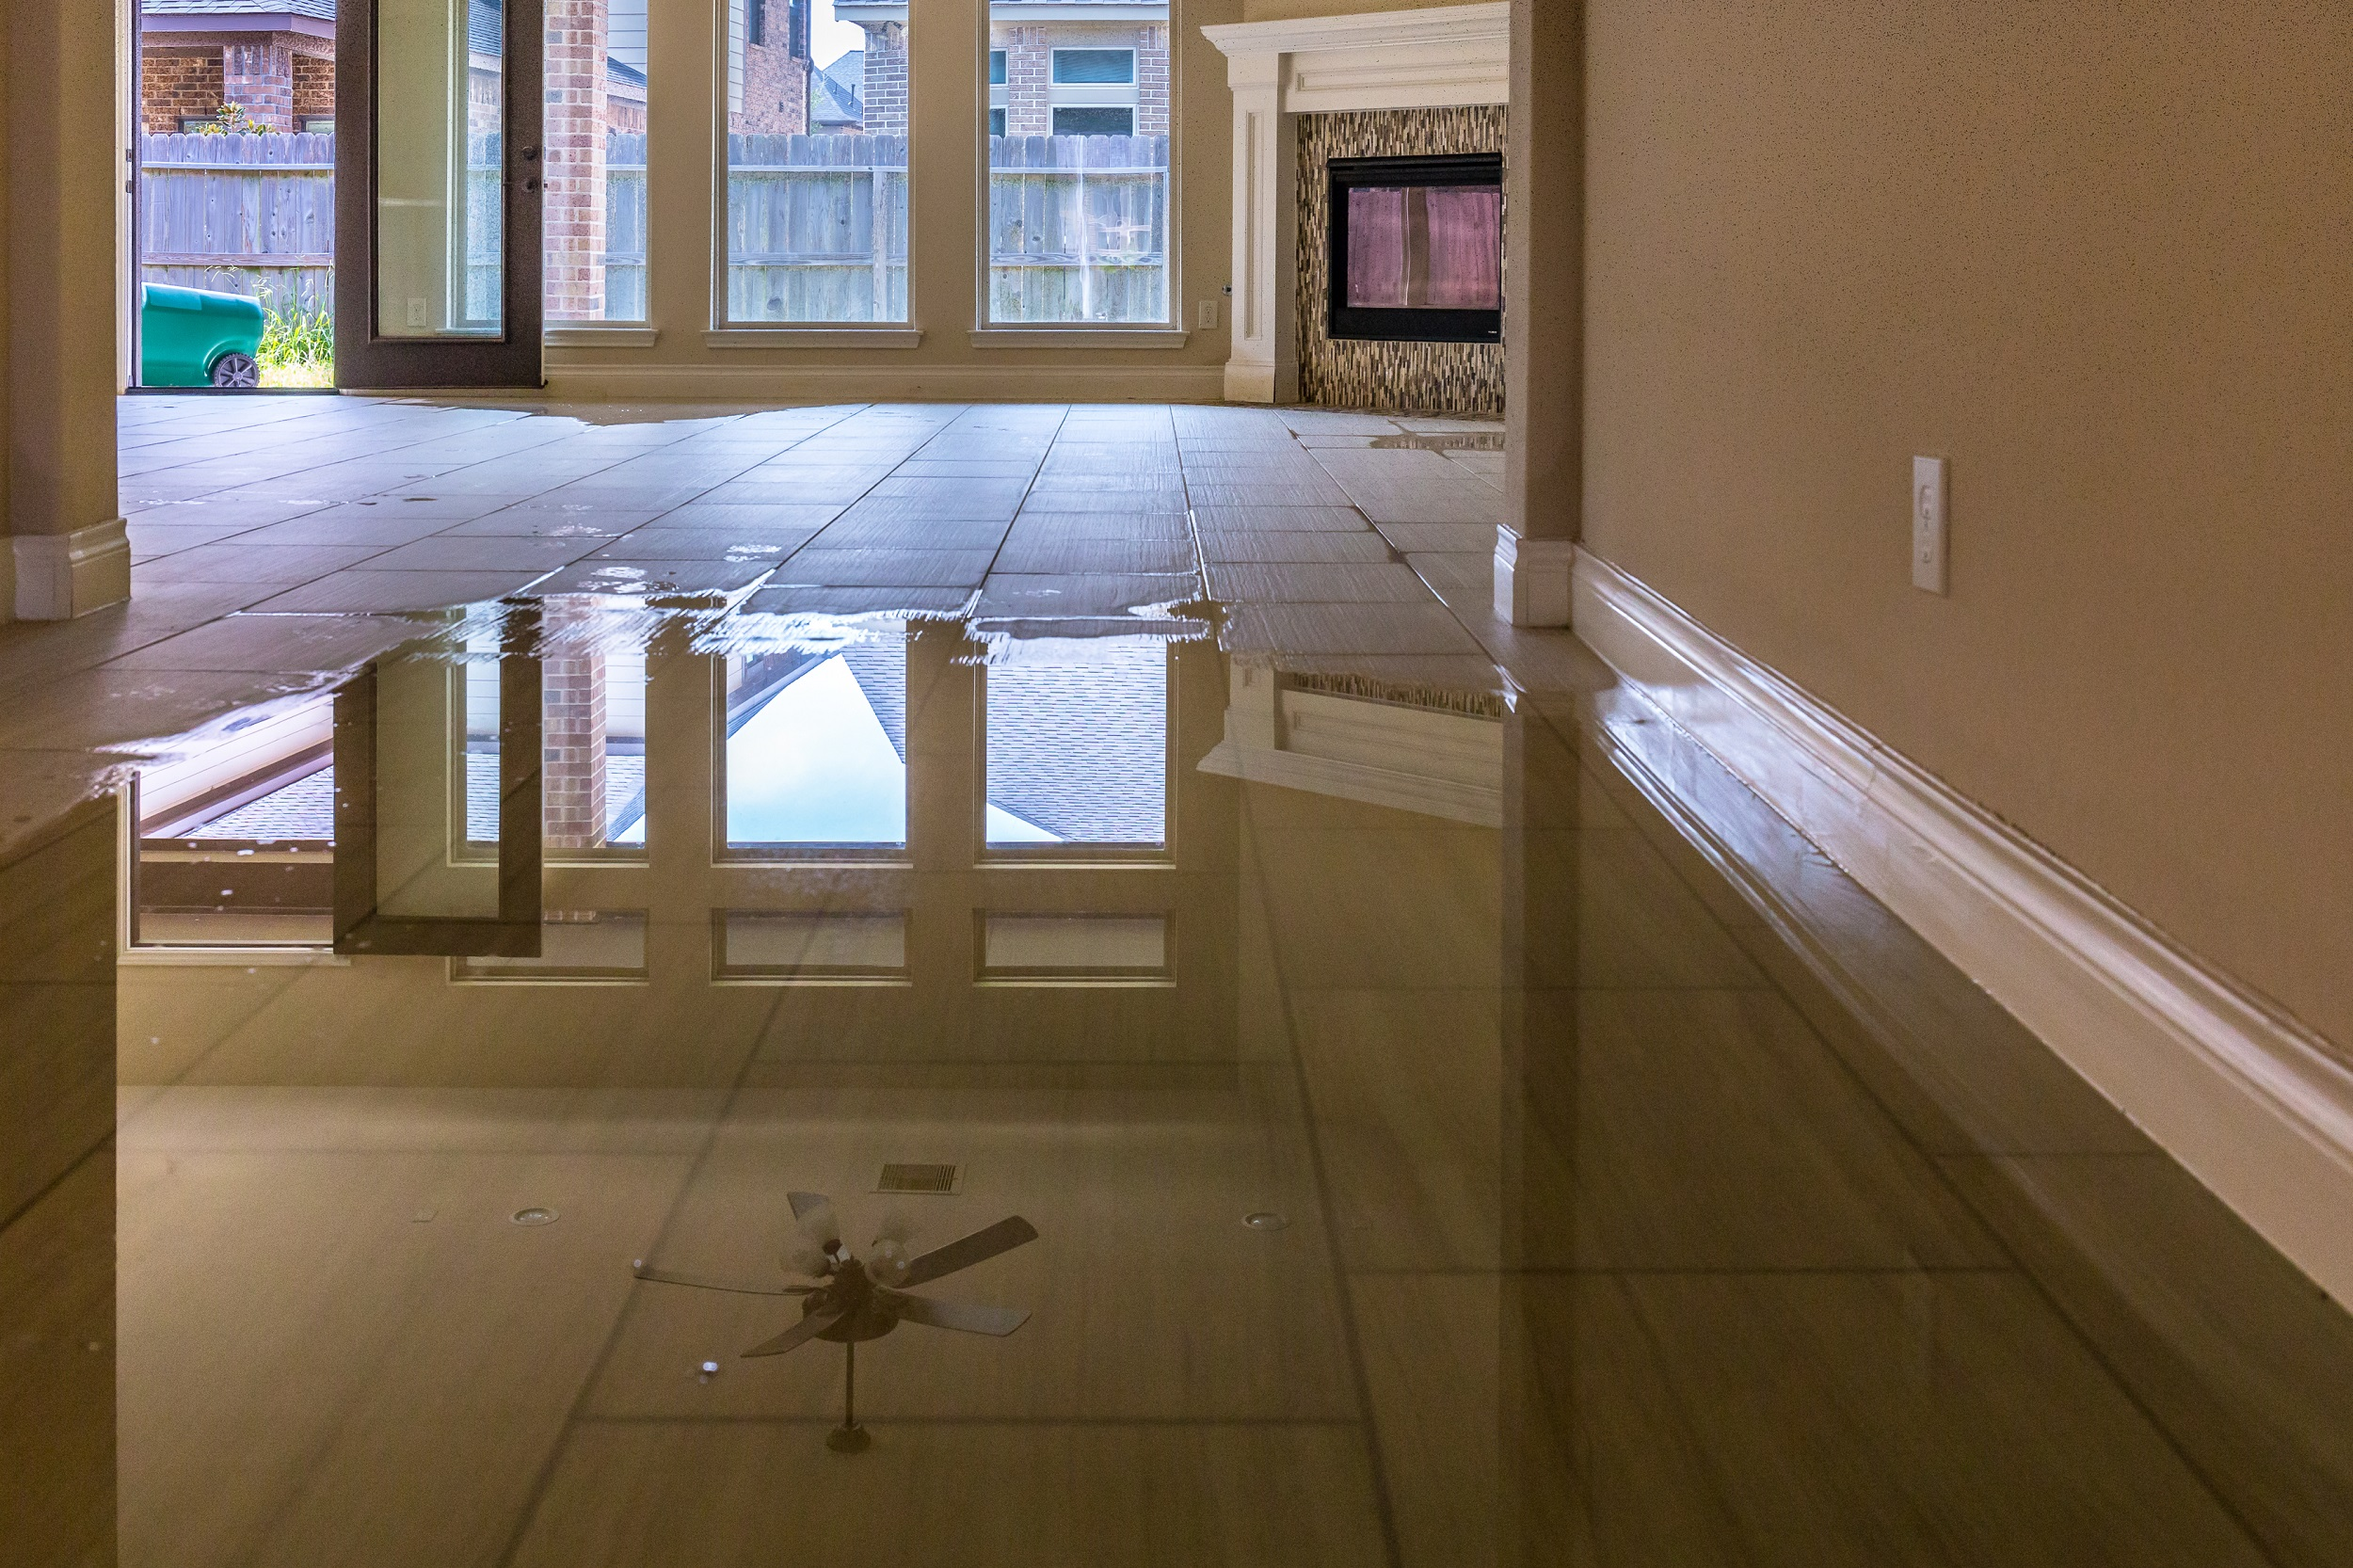 Water Damage: What Can Cause It, How to Prevent it